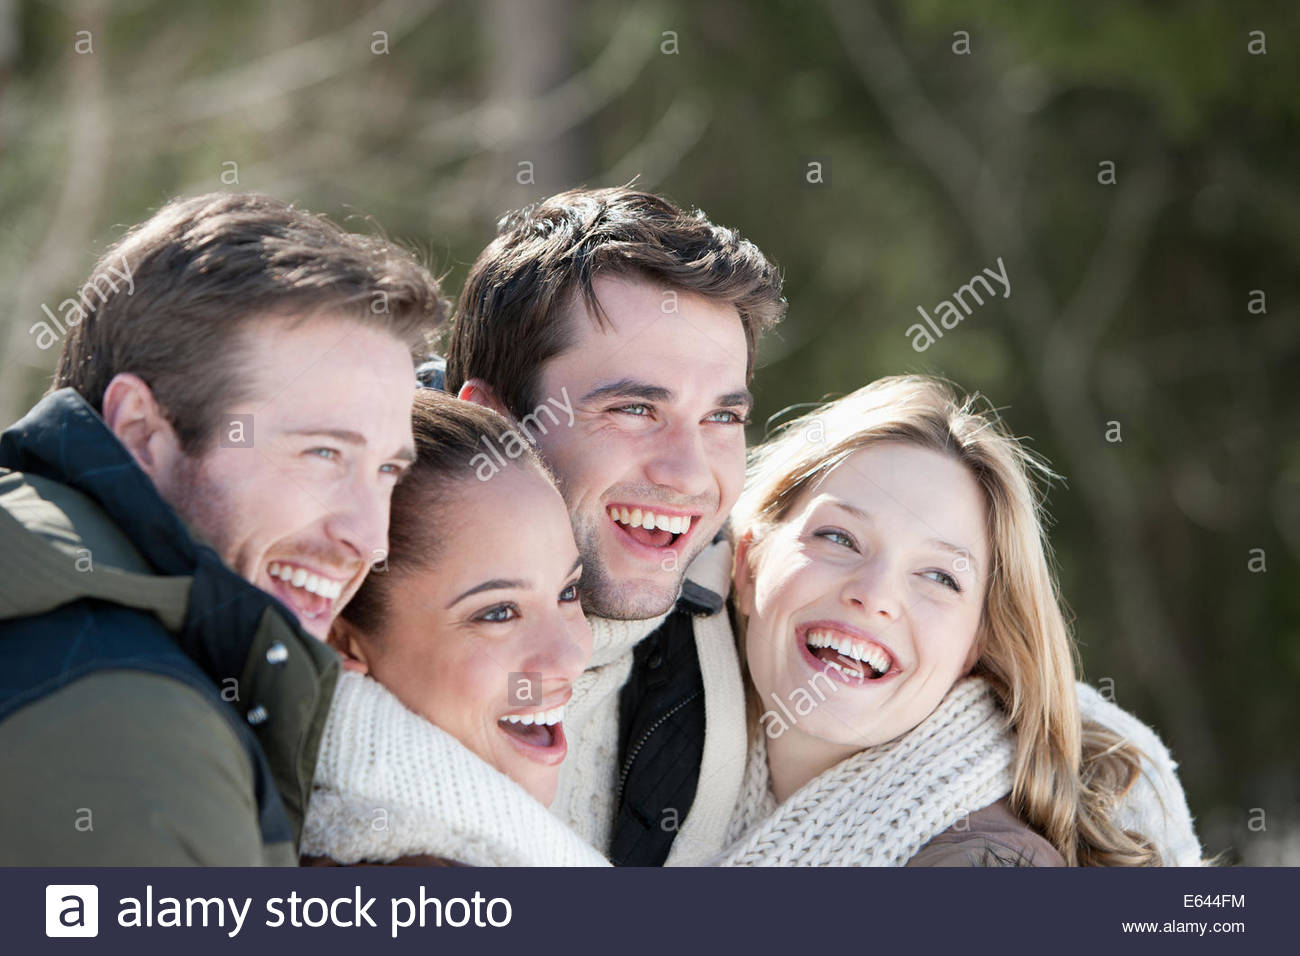 Smiling couples hugging Photo Stock